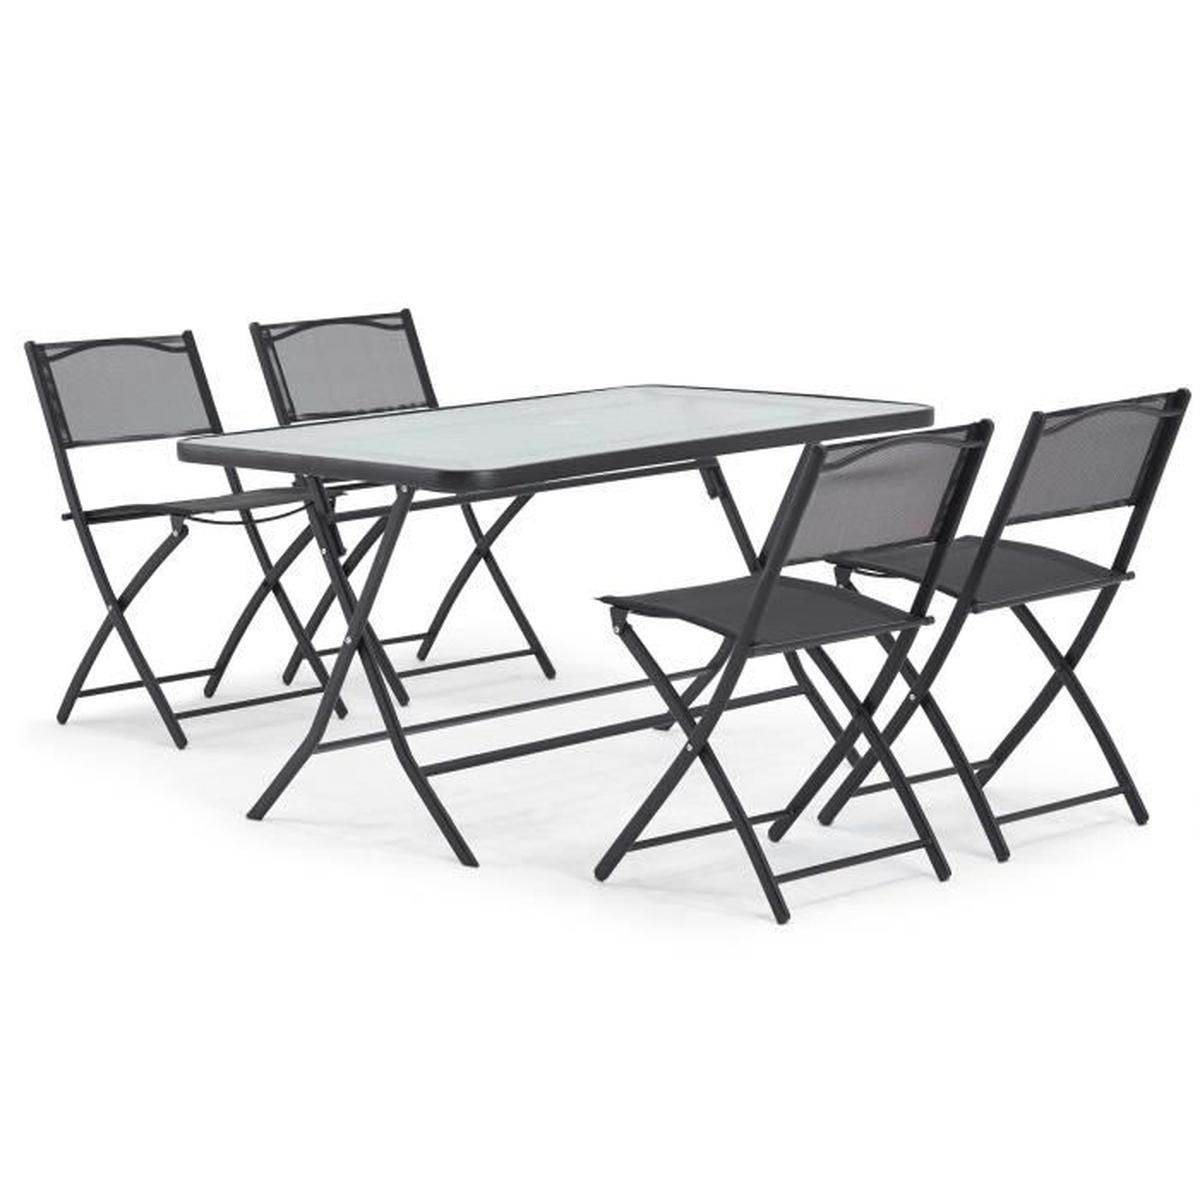 Table De Jardin Bistrot Luxe Table Terrasse Pas Cher Of 32 Luxe Table De Jardin Bistrot